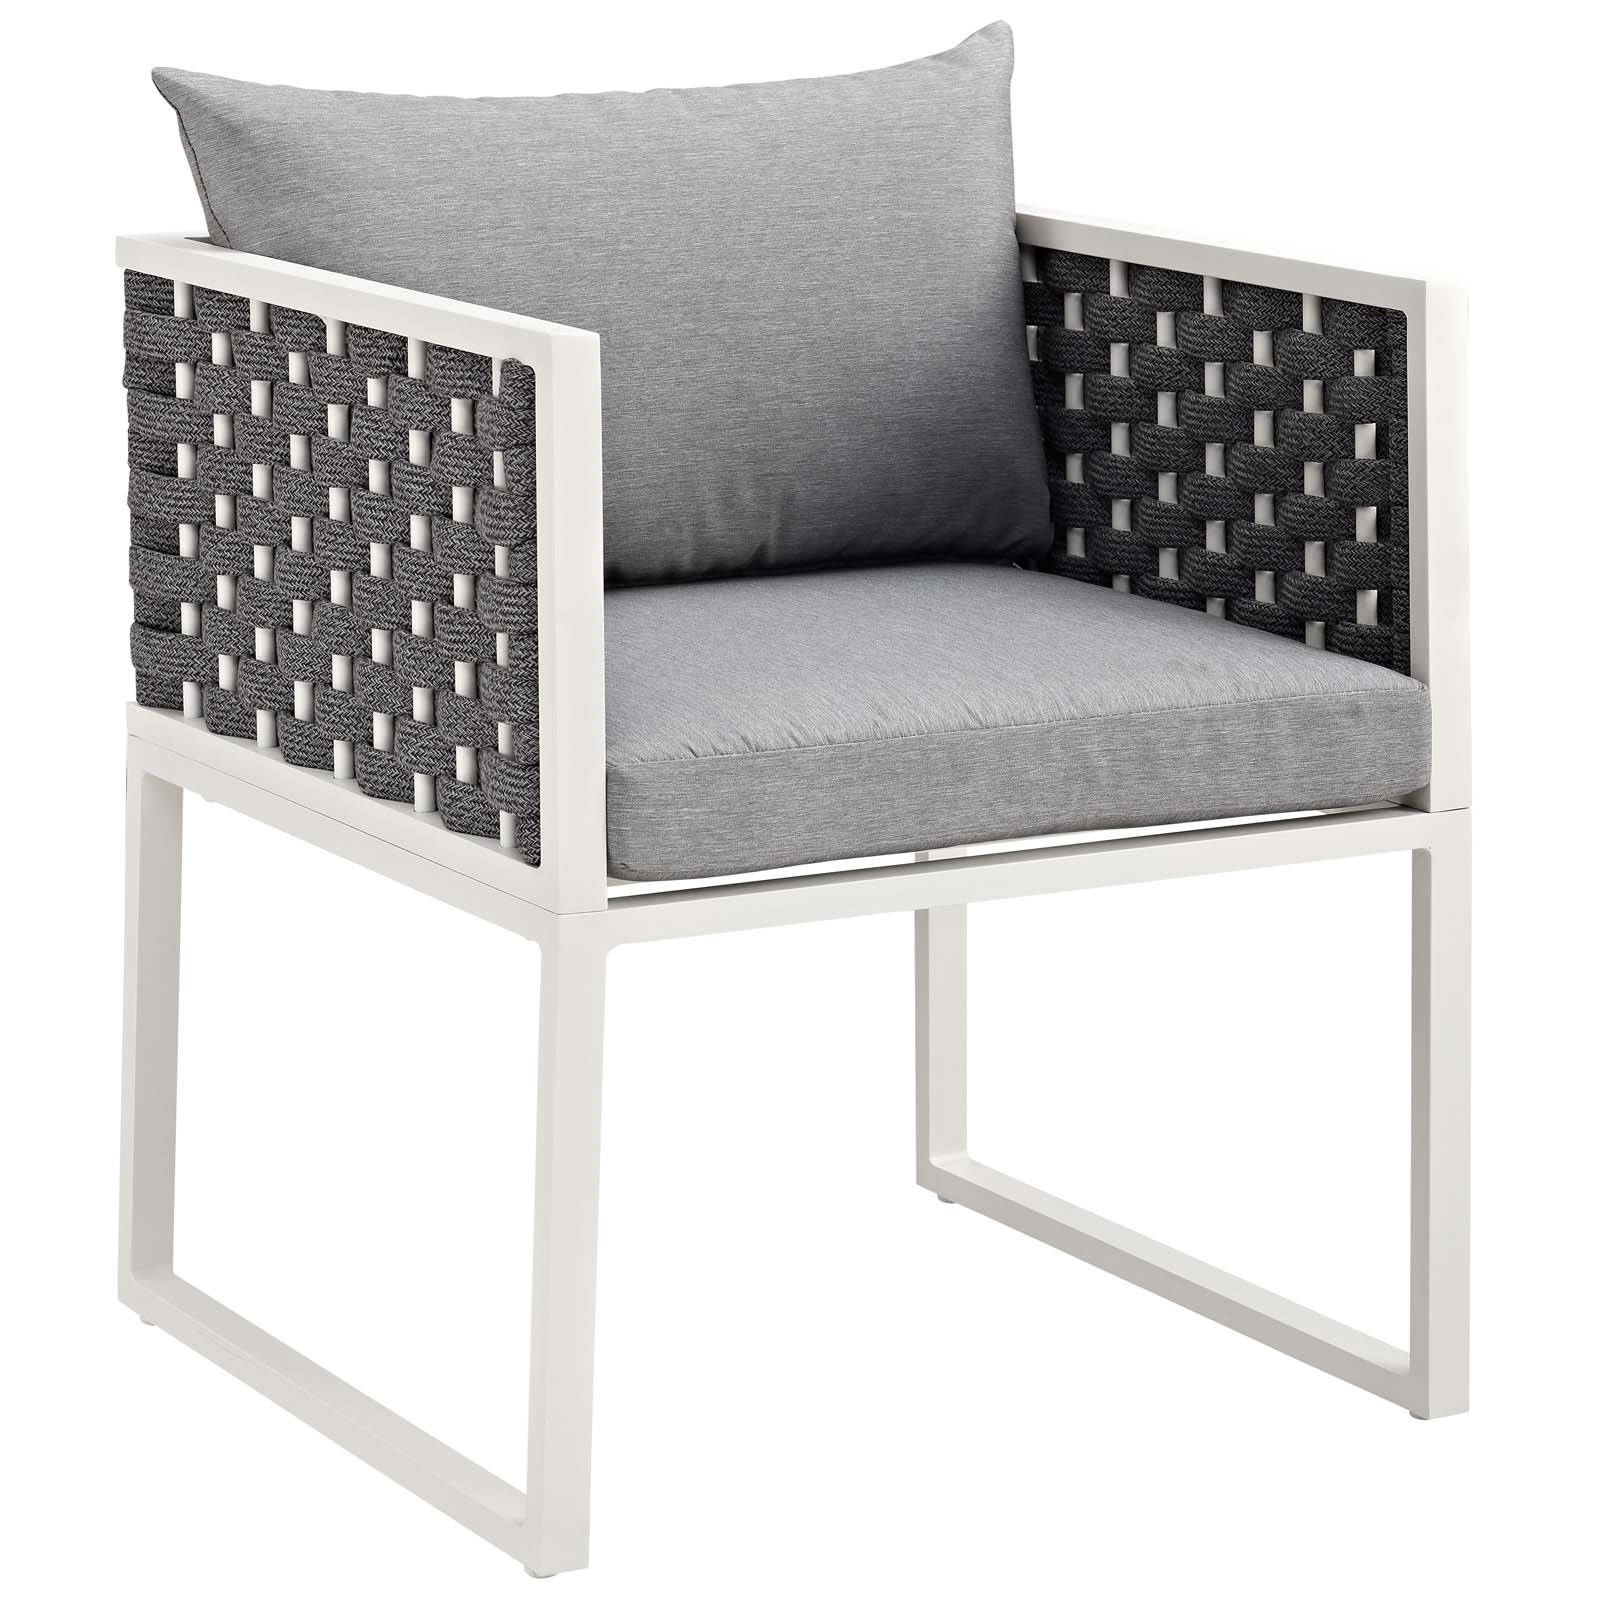 Modway Furniture Stance White Gray Outdoor Patio Dining Armchair